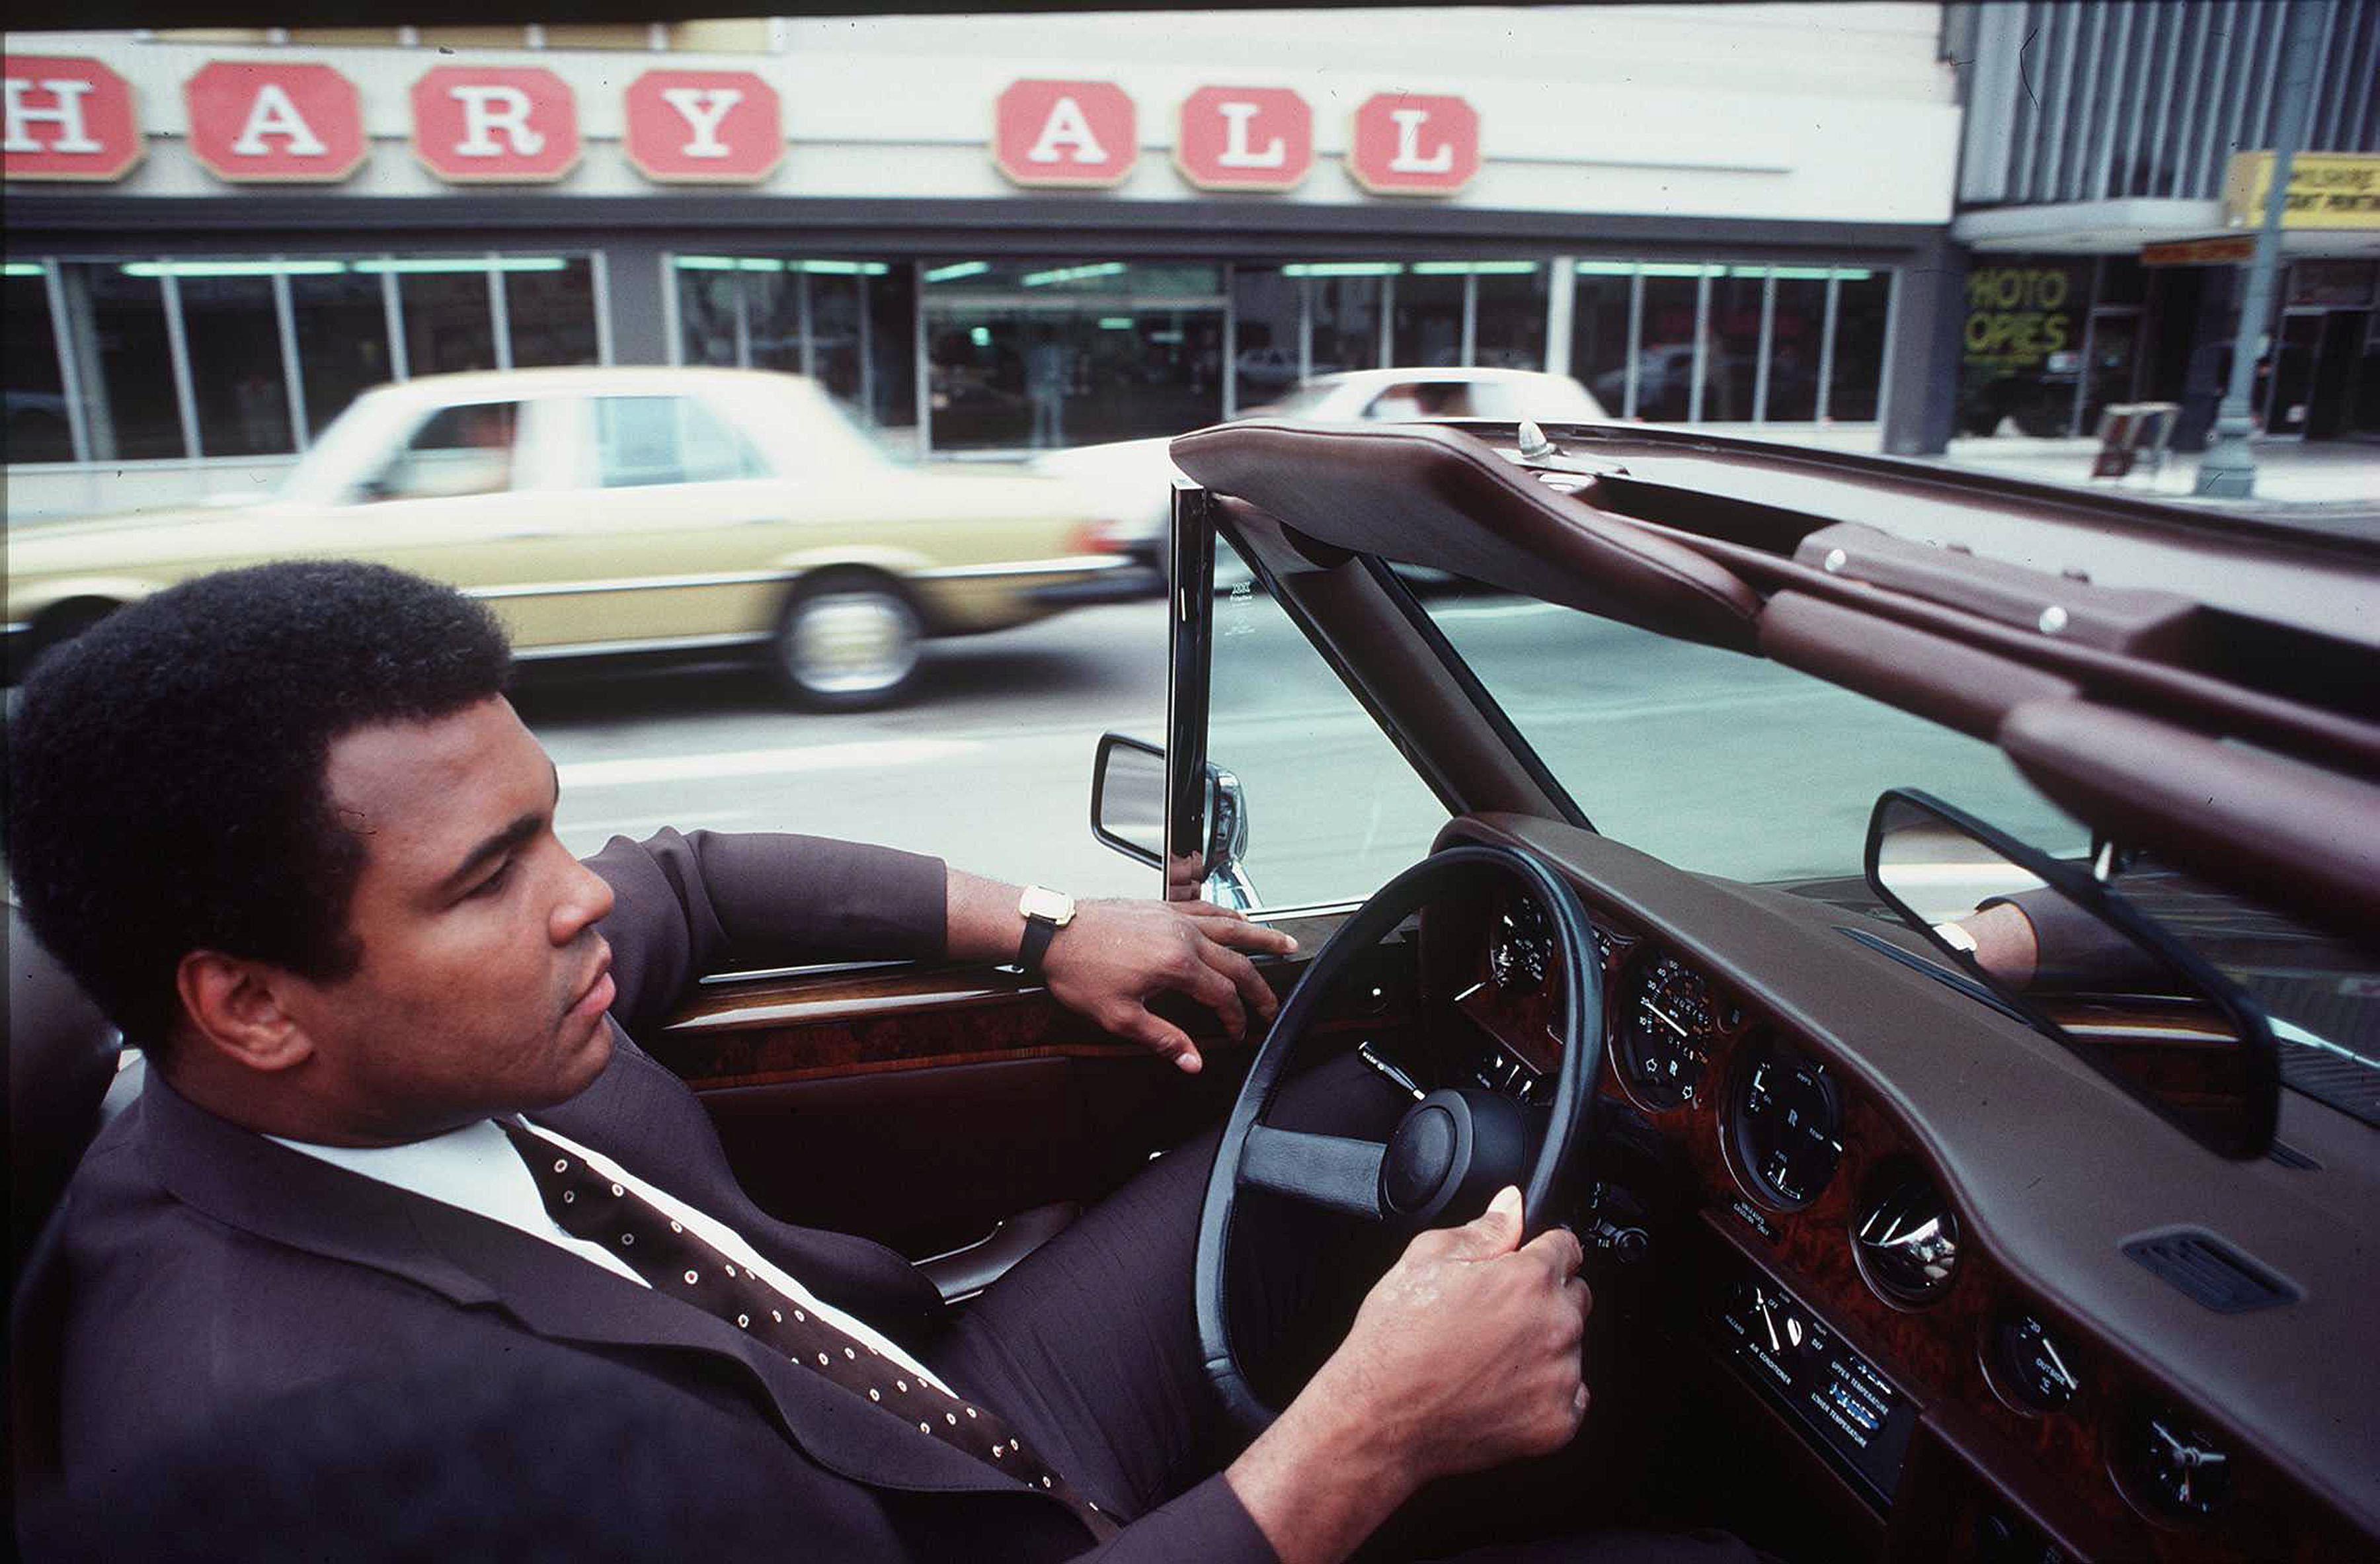 3113 LOS ANGELES CALIFORNIA May 3, 1980 Muhammad Ali drives his convertible Rolls Royce through the streets of Los Angeles before his last fight with Larry Holmes which took place in Las Vegas, 2nd October 1980., Image: 288875227, License: Rights-managed, Restrictions: , Model Release: no, Credit line: Profimedia, Pacific coast news